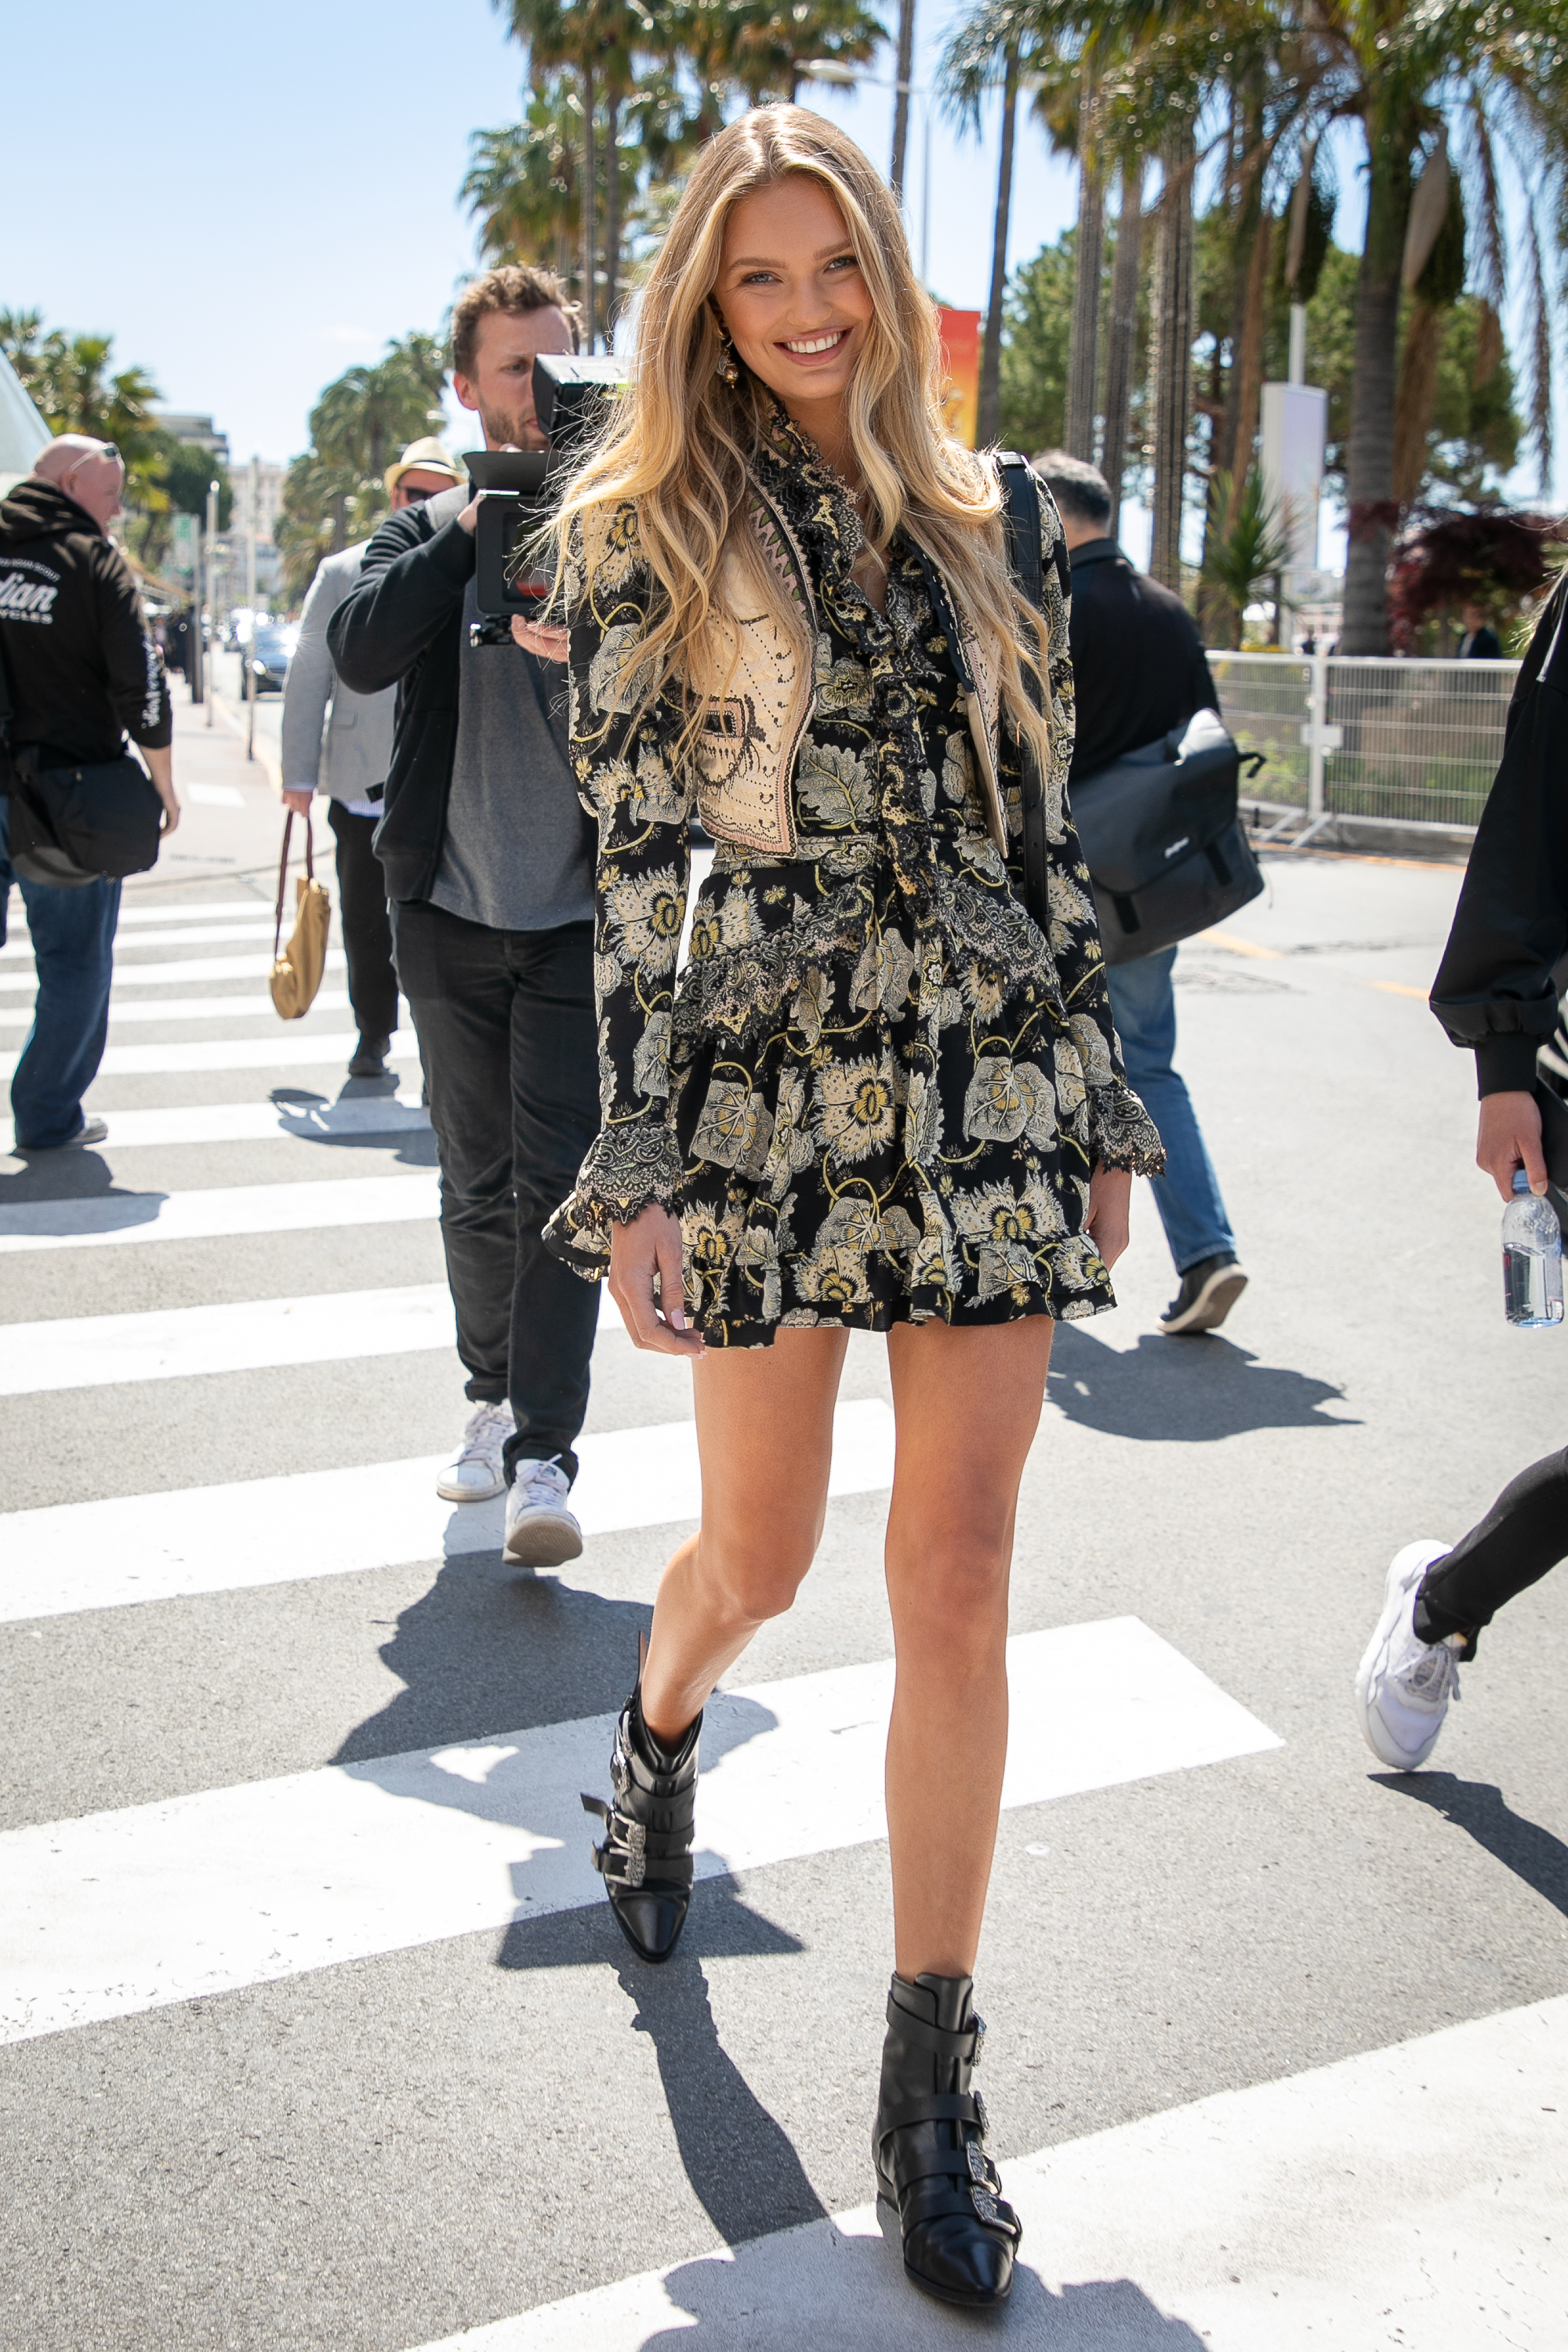 Celebrity Sightings At The 72nd Annual Cannes Film Festival - Day 2